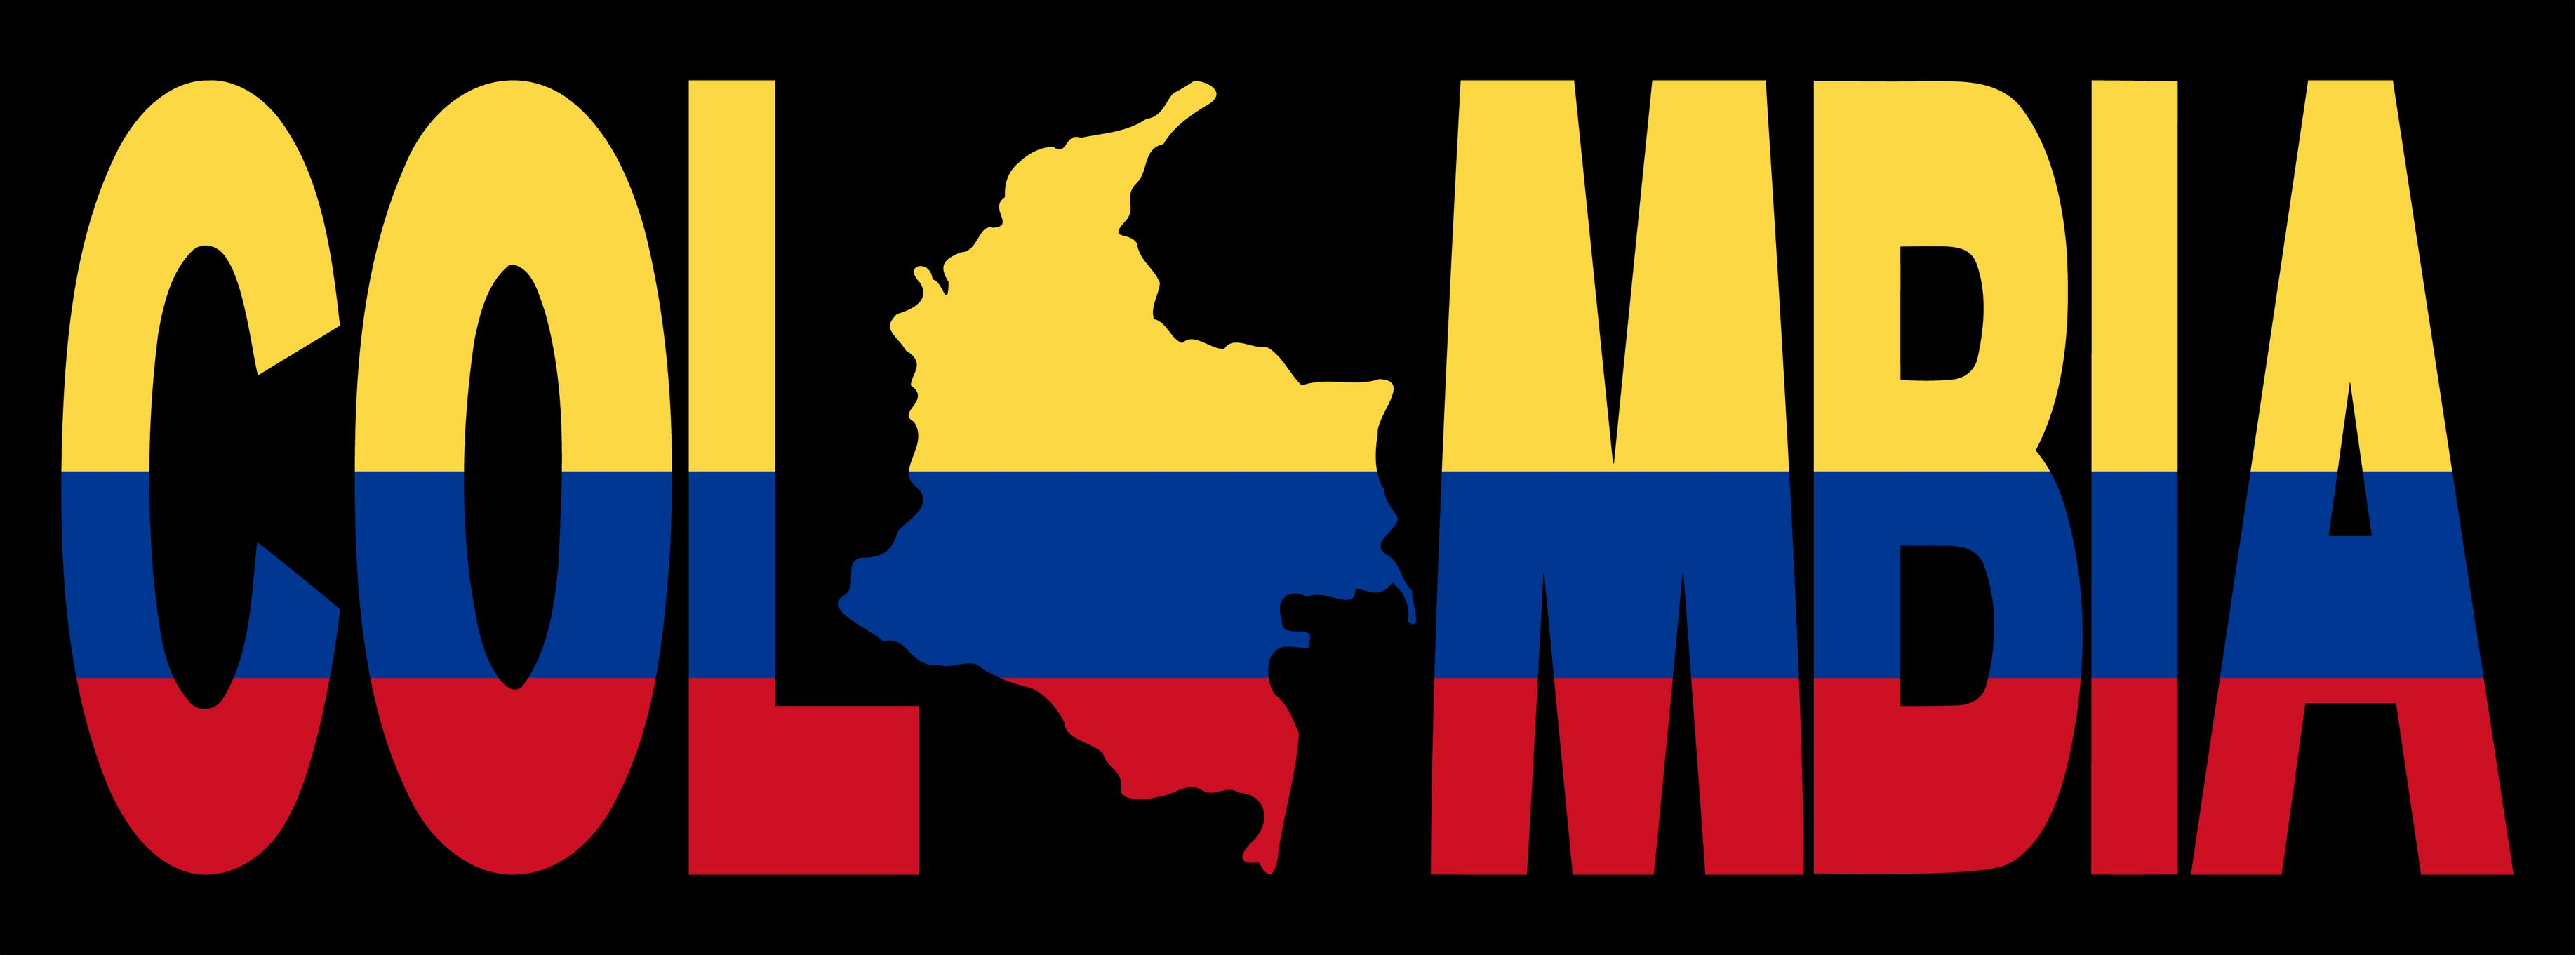 3671x1361 Colombia images Colombia HD wallpaper and background photos (37284624)